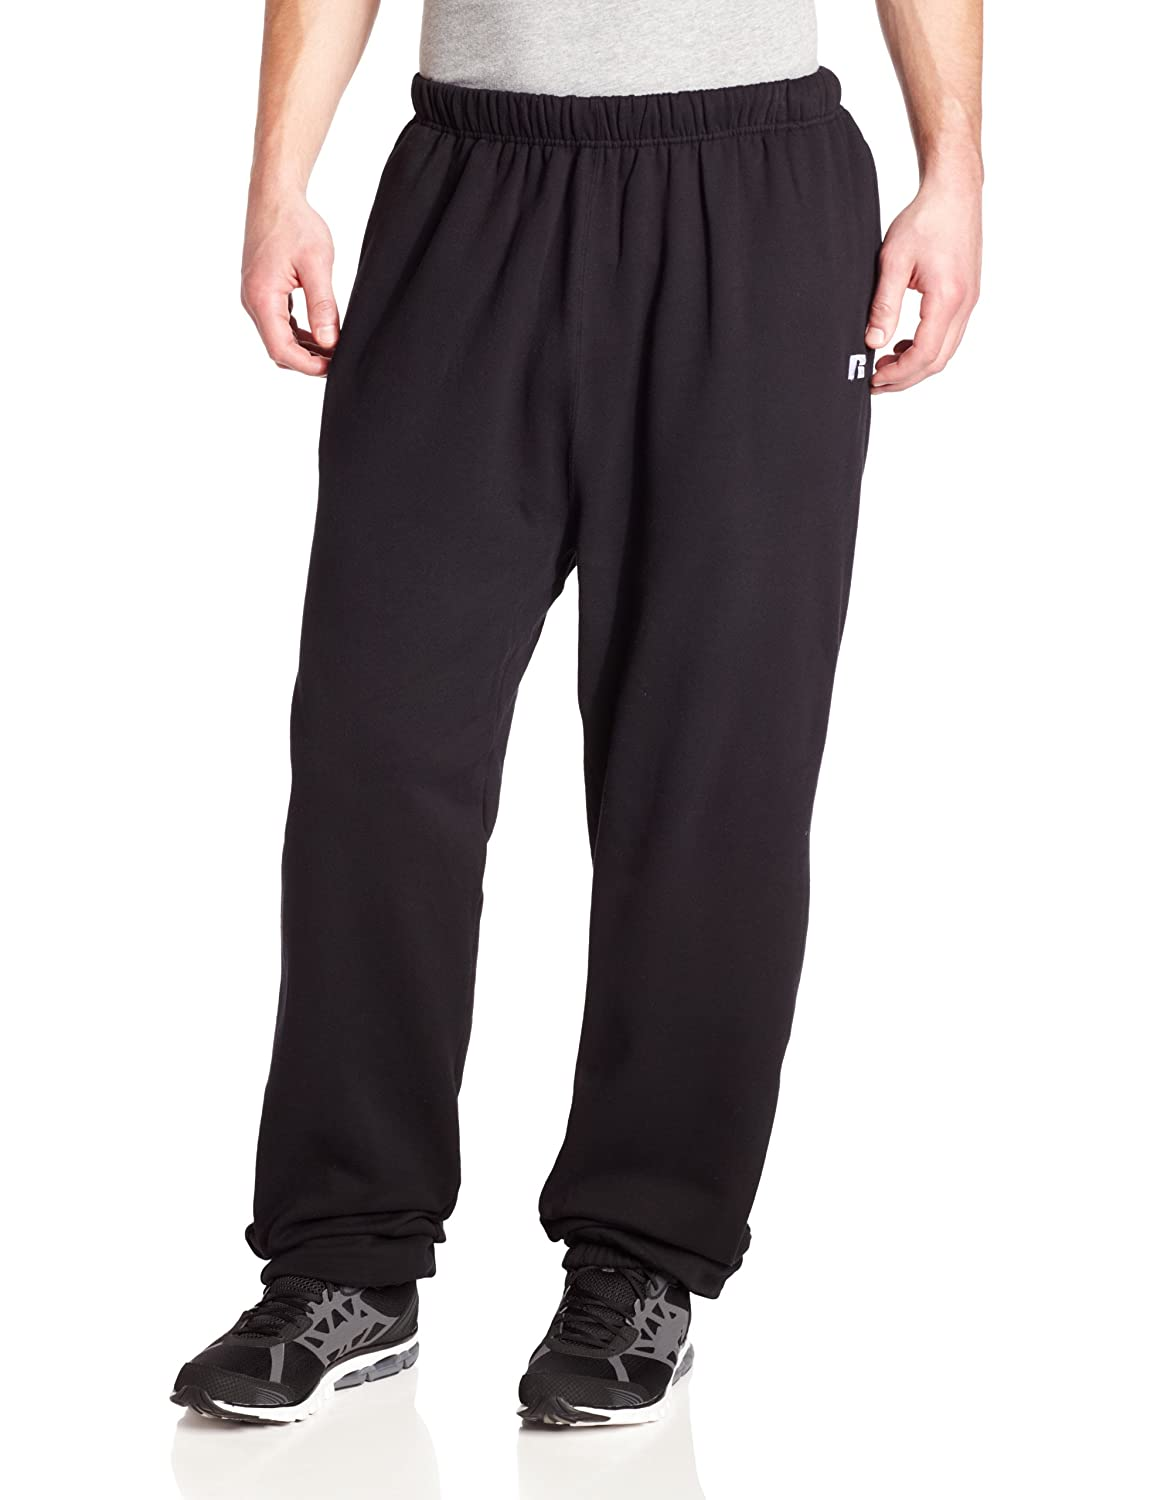 7ac7de6e24551f There is nothing more comfortable than cotton fleece pants, on seam pockets  along with elastic waistband with drawstring provide added comfort to this  ...